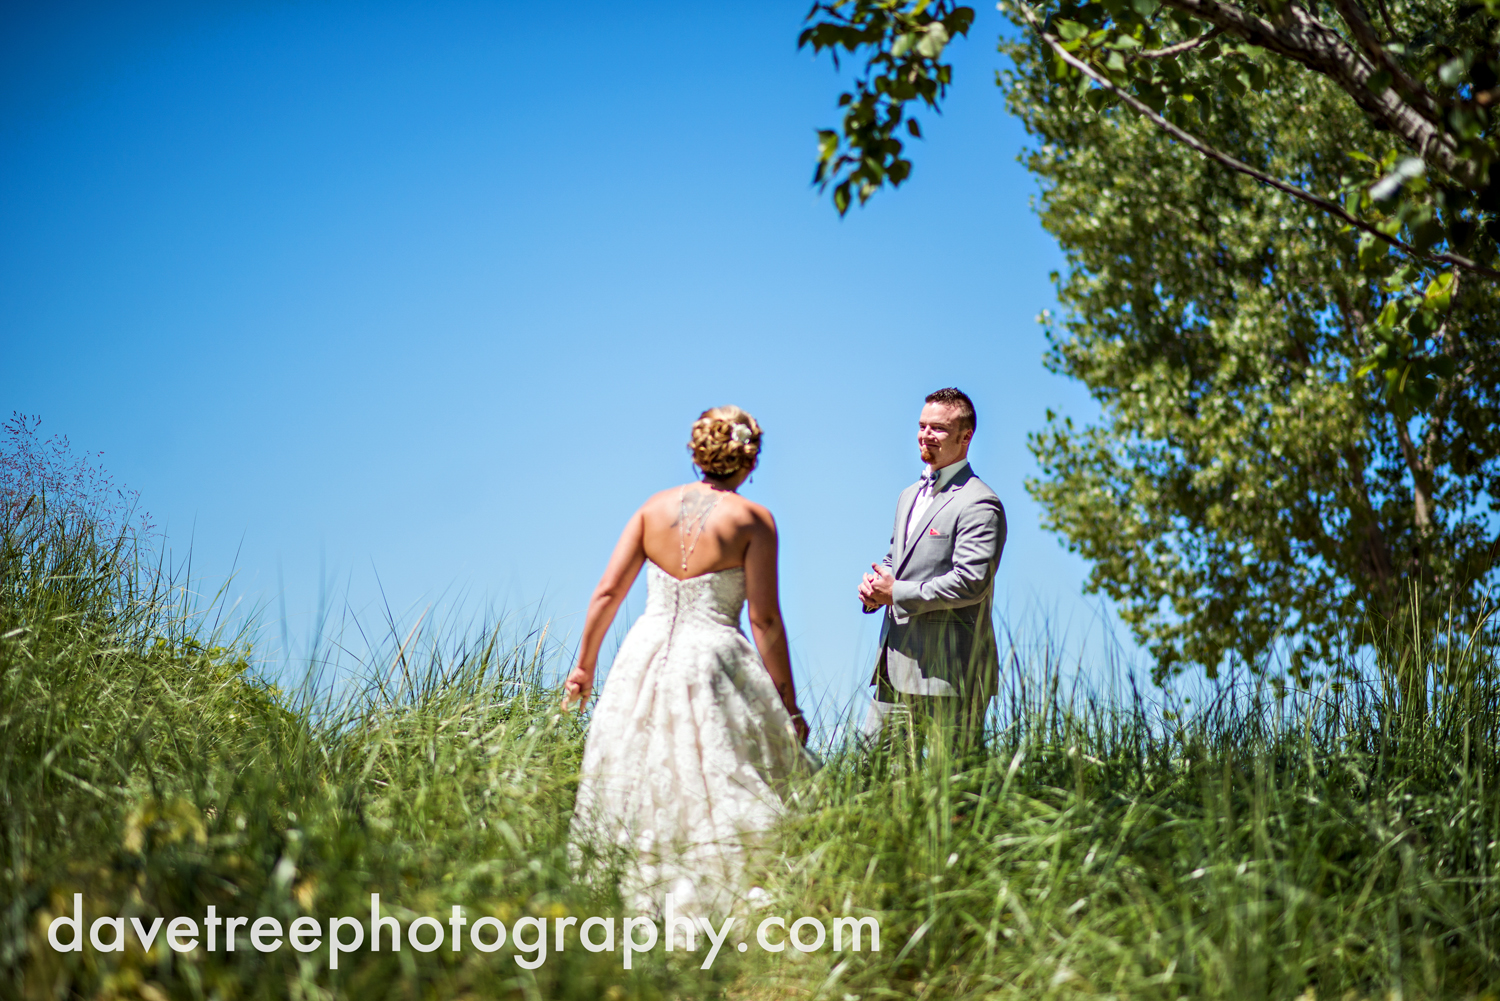 veranda_wedding_photographer_st_joseph_wedding_135.jpg